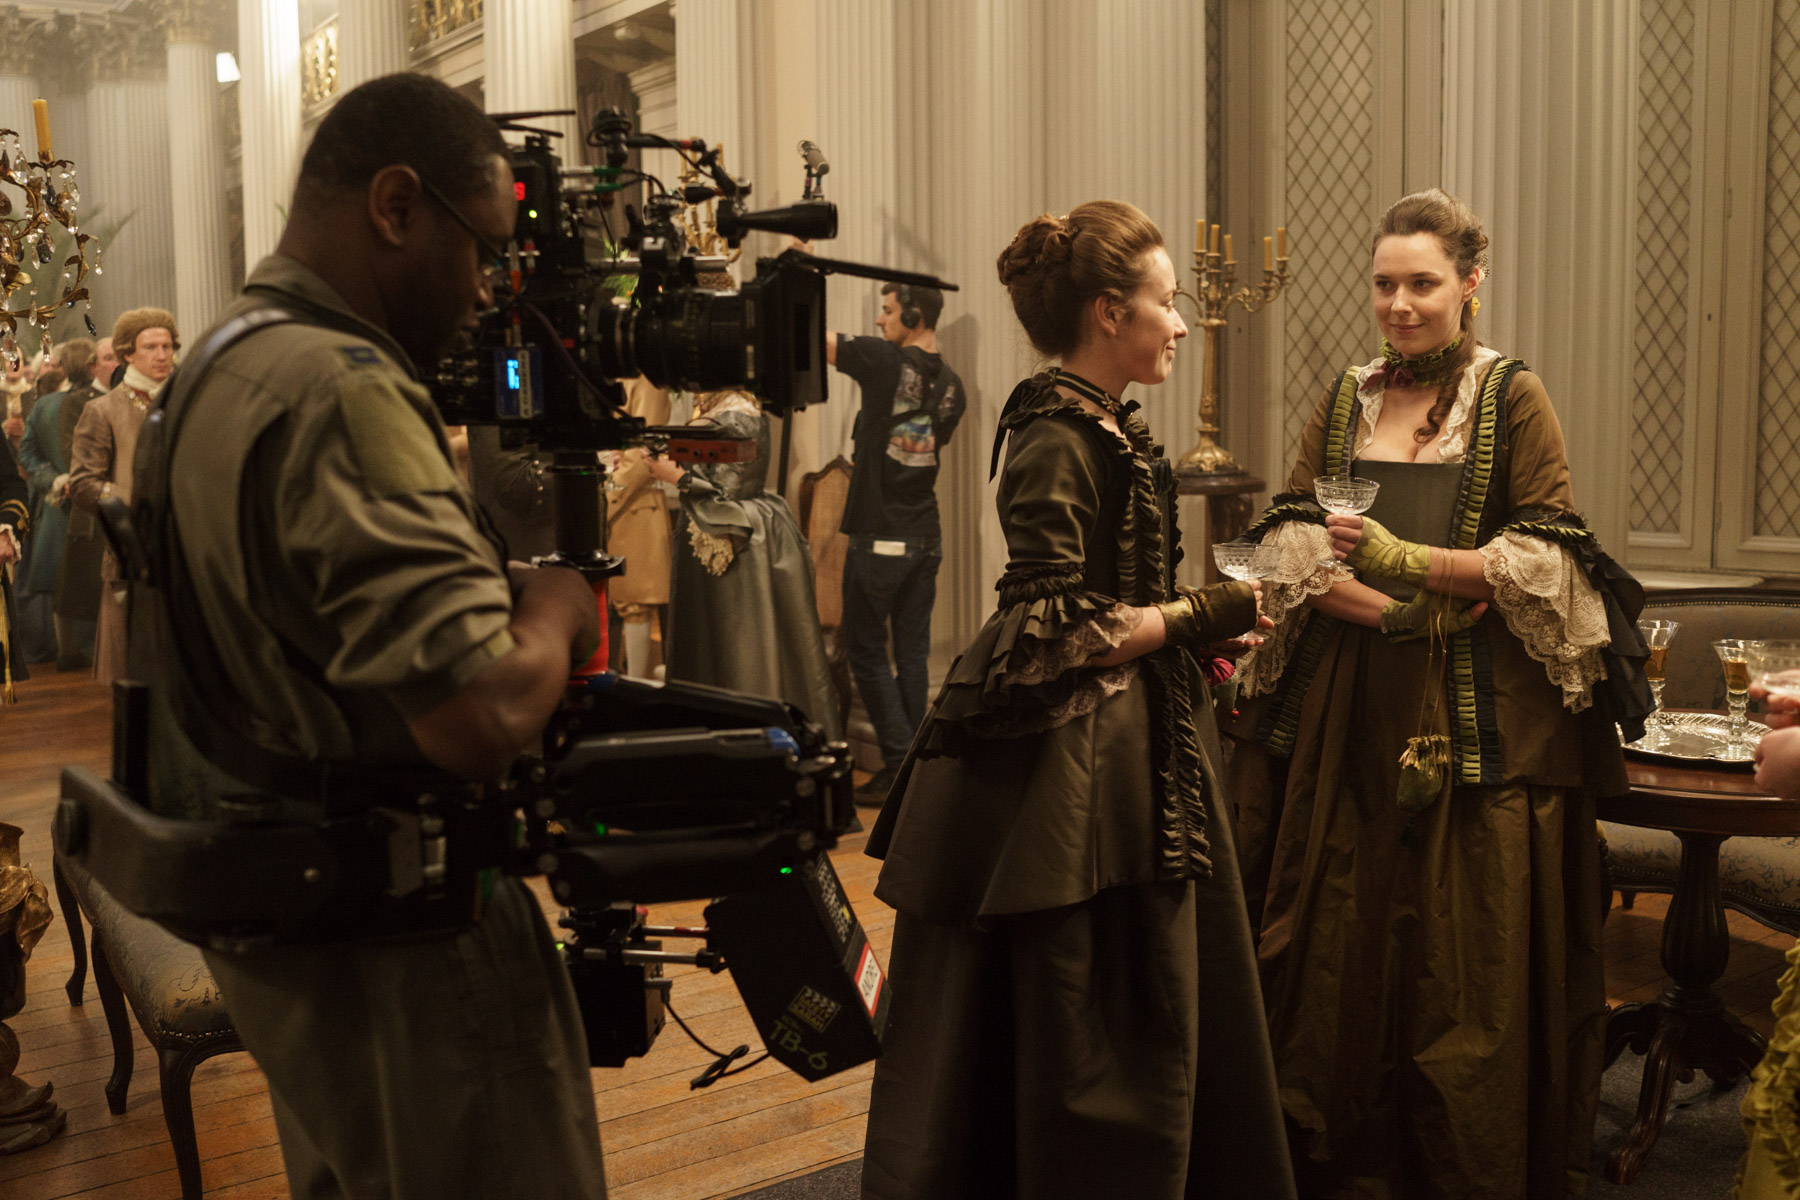 Outlander Season 3 - Filming at the Governor's Ball